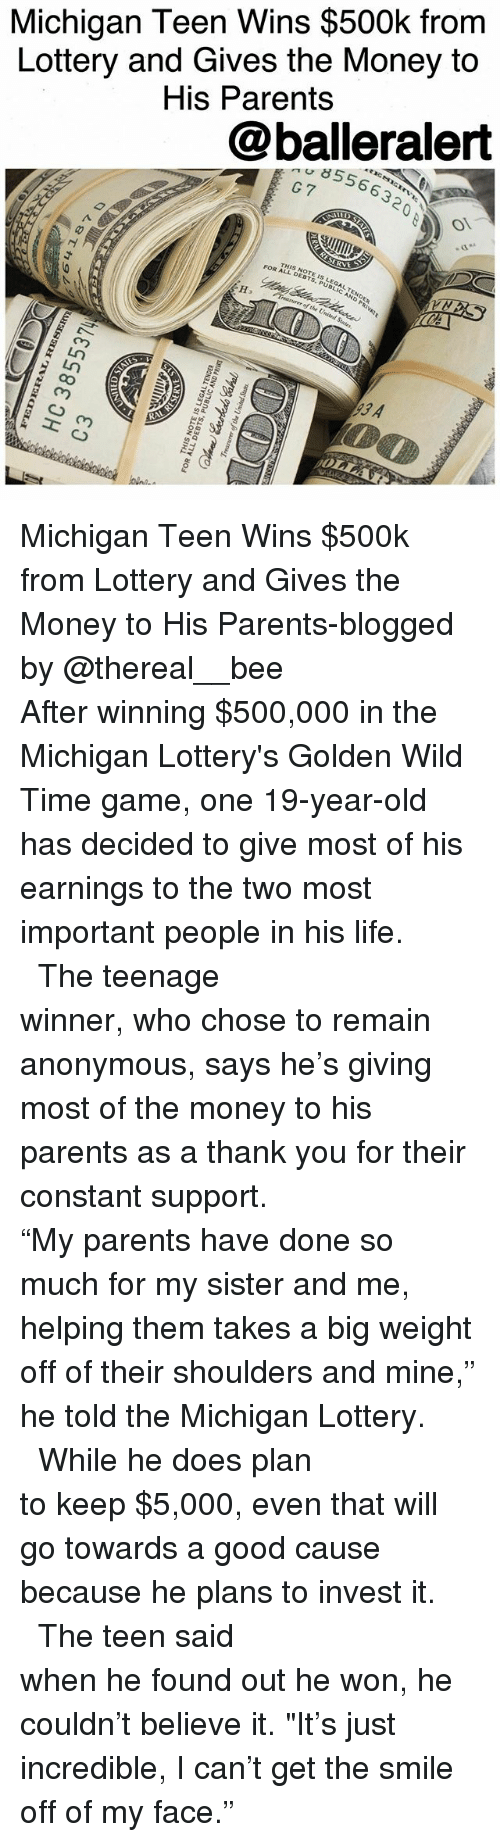 """olla: Michigan Teen Wins $500k from  Lottery and Gives the Money to  His Parents  @balleralert  8556632  G7  RVE  THSDEBTS,PUBLIC AND PRIVAt  NOTE SLEGAL, TENDER  FOR AL-NOTE I  ure of the United States  93 A  R  OLLA  loan  amS 곁 pun a fIJo aarnroatL  aaaN3LTVD37 SI 3LON SIHI  Aay  011ラ  EJ  LESSBE0H  48T+1 9 Michigan Teen Wins $500k from Lottery and Gives the Money to His Parents-blogged by @thereal__bee ⠀⠀⠀⠀⠀⠀⠀⠀⠀ ⠀⠀⠀⠀⠀⠀⠀⠀⠀ After winning $500,000 in the Michigan Lottery's Golden Wild Time game, one 19-year-old has decided to give most of his earnings to the two most important people in his life. ⠀⠀⠀⠀⠀⠀⠀⠀⠀ ⠀⠀⠀⠀⠀⠀⠀⠀⠀ The teenage winner, who chose to remain anonymous, says he's giving most of the money to his parents as a thank you for their constant support. ⠀⠀⠀⠀⠀⠀⠀⠀⠀ ⠀⠀⠀⠀⠀⠀⠀⠀⠀ """"My parents have done so much for my sister and me, helping them takes a big weight off of their shoulders and mine,"""" he told the Michigan Lottery. ⠀⠀⠀⠀⠀⠀⠀⠀⠀ ⠀⠀⠀⠀⠀⠀⠀⠀⠀ While he does plan to keep $5,000, even that will go towards a good cause because he plans to invest it. ⠀⠀⠀⠀⠀⠀⠀⠀⠀ ⠀⠀⠀⠀⠀⠀⠀⠀⠀ The teen said when he found out he won, he couldn't believe it. """"It's just incredible, I can't get the smile off of my face."""""""